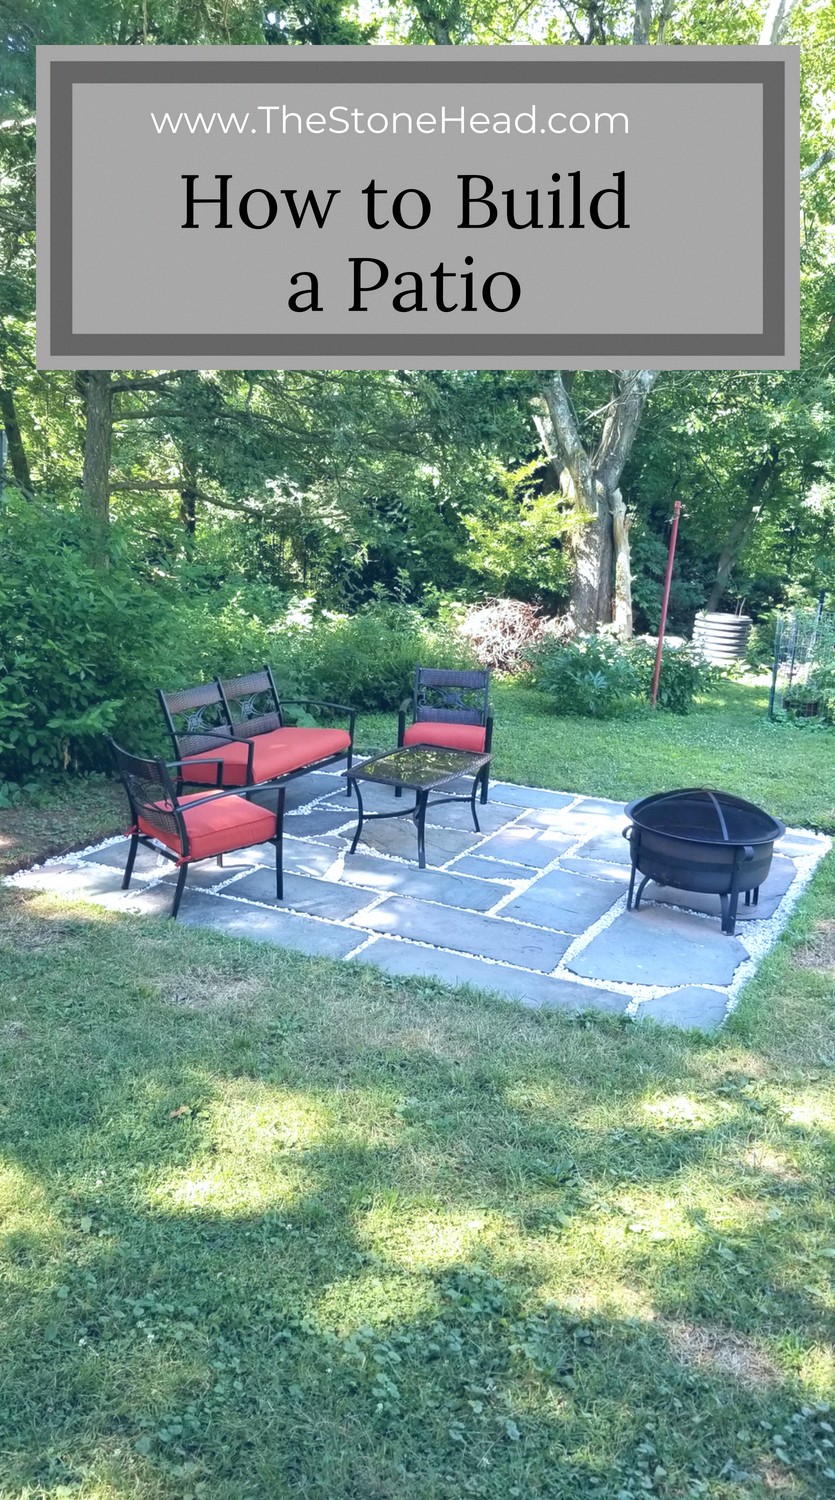 Our Fire Pit and Patio Area is Done! And it only cost $150! #backyardpatiodesigns